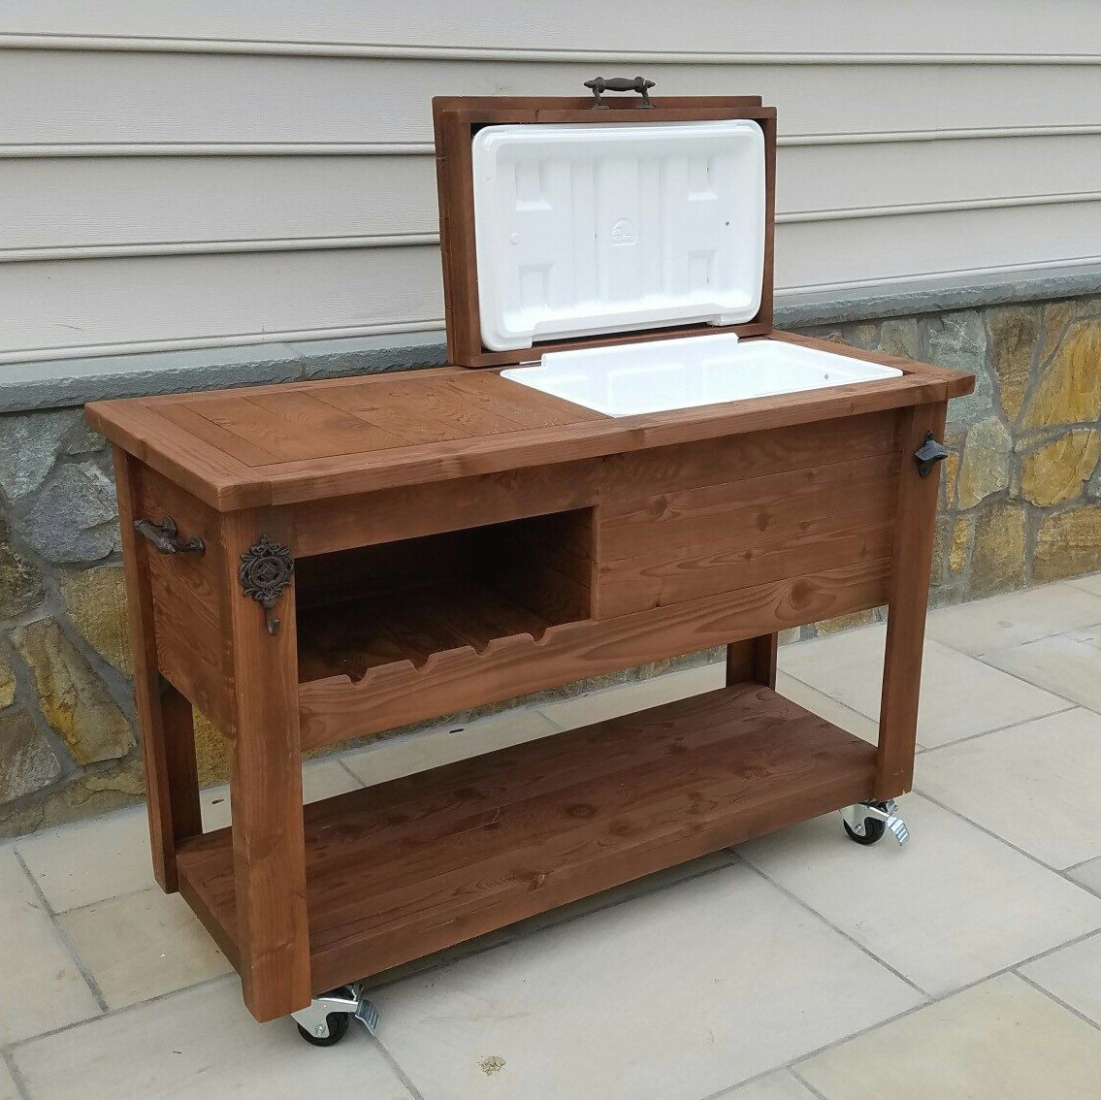 black outdoor side table the outrageous fun bjs end mini fridge best rustic wooden cooler bar cart wine with cozy console your house design refrigerator taking manliness max man